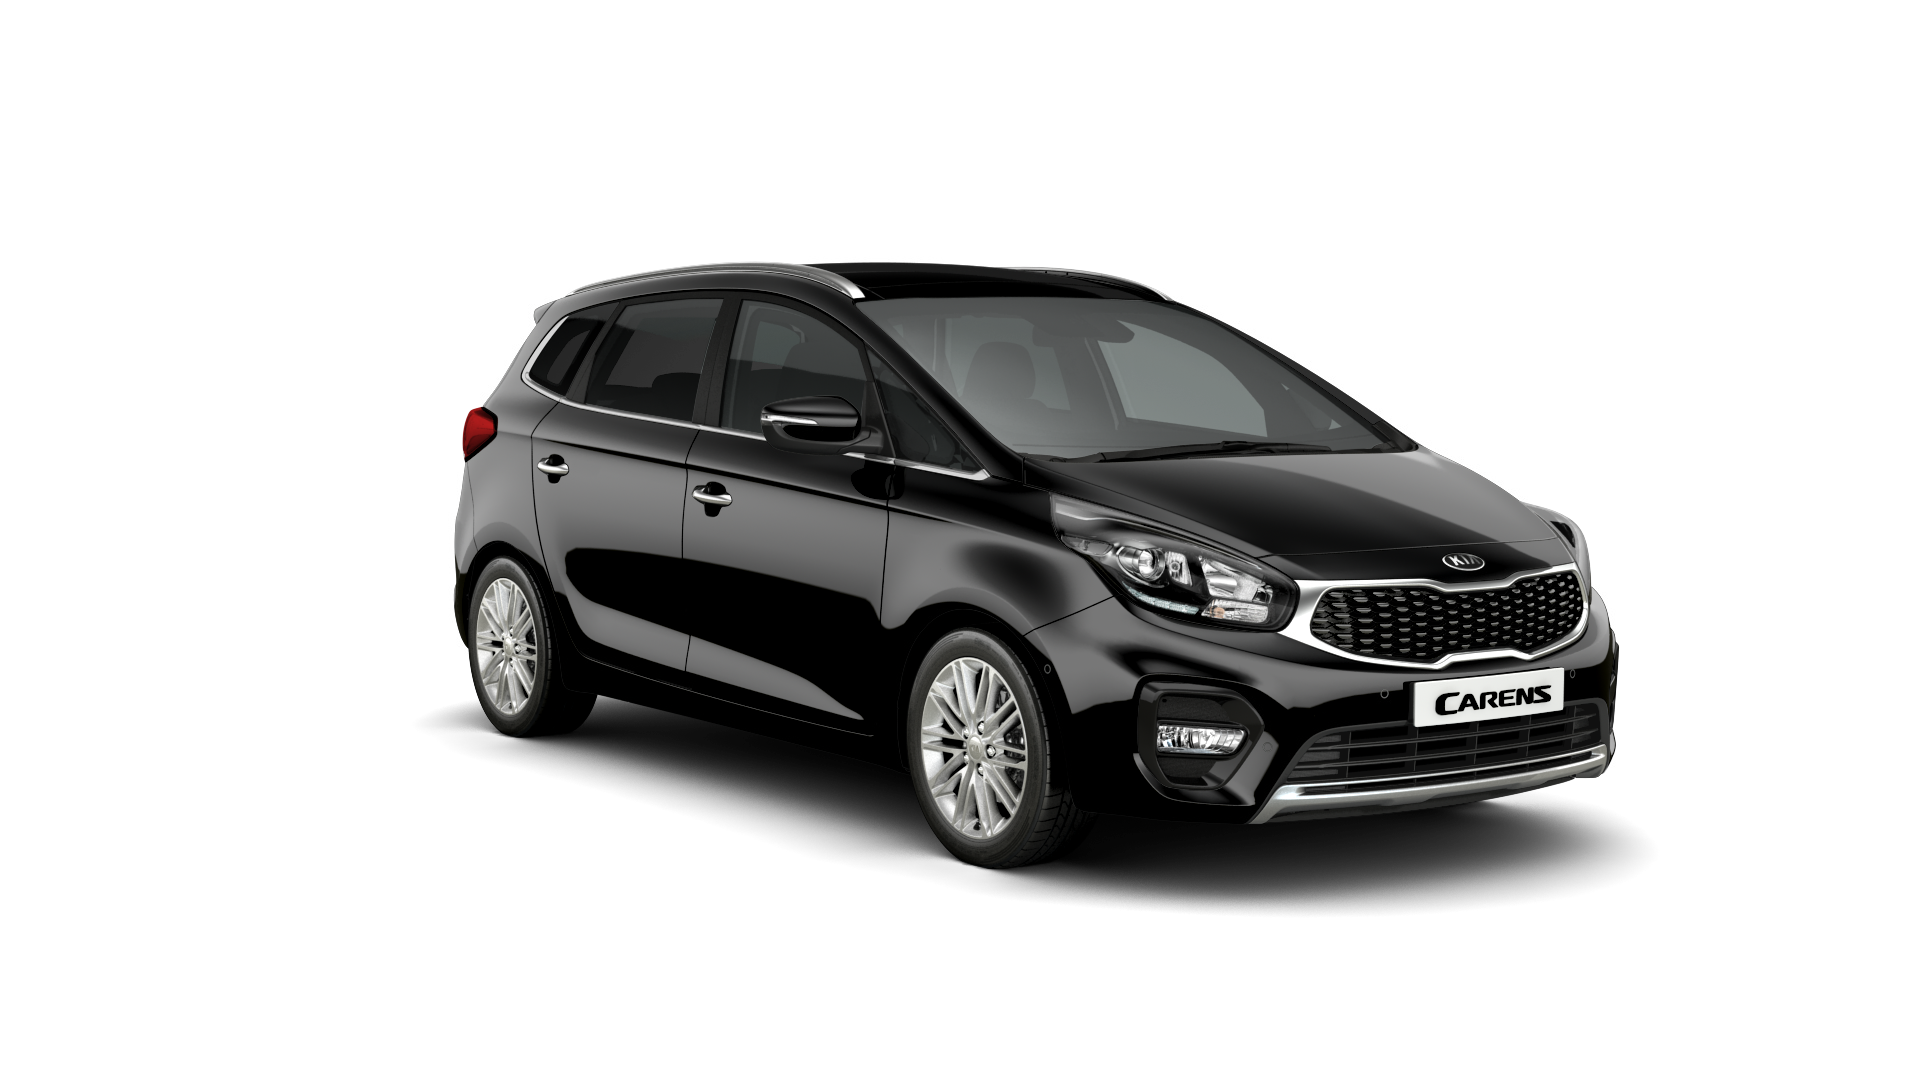 Kia Carens Quartz Black